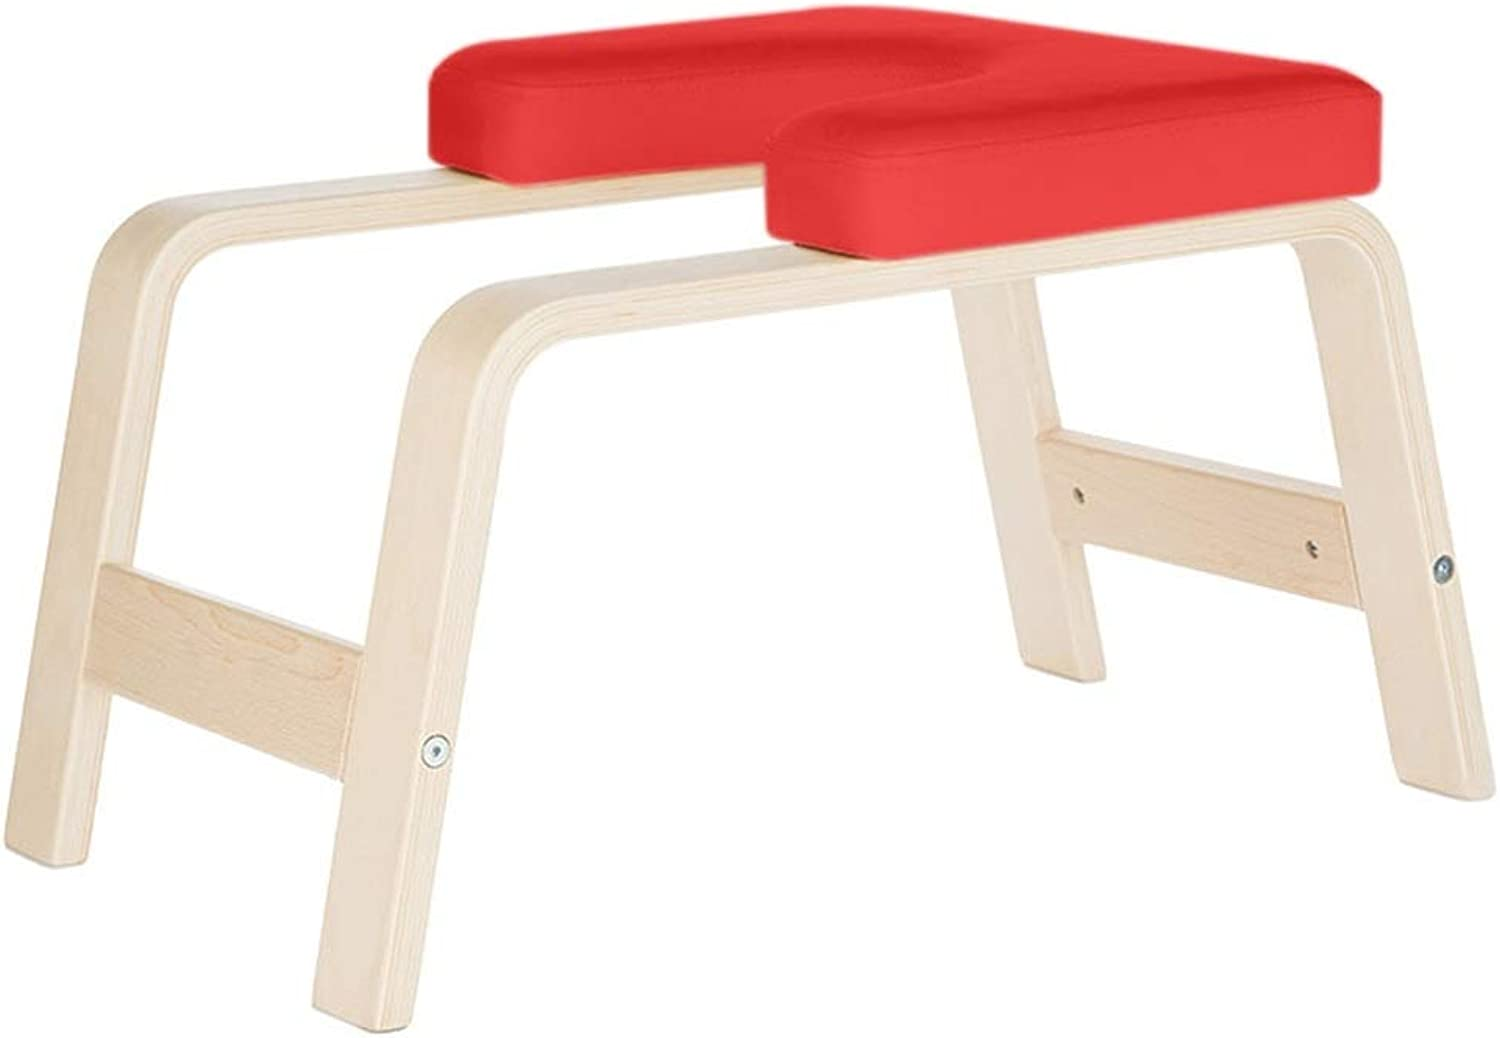 Wooden Yoga Chair Headstand Bench, Fitness White Birch Yoga Chair Inversion Bench, Balanced Body Headstand Bench Ideal Chair, Original Headstander